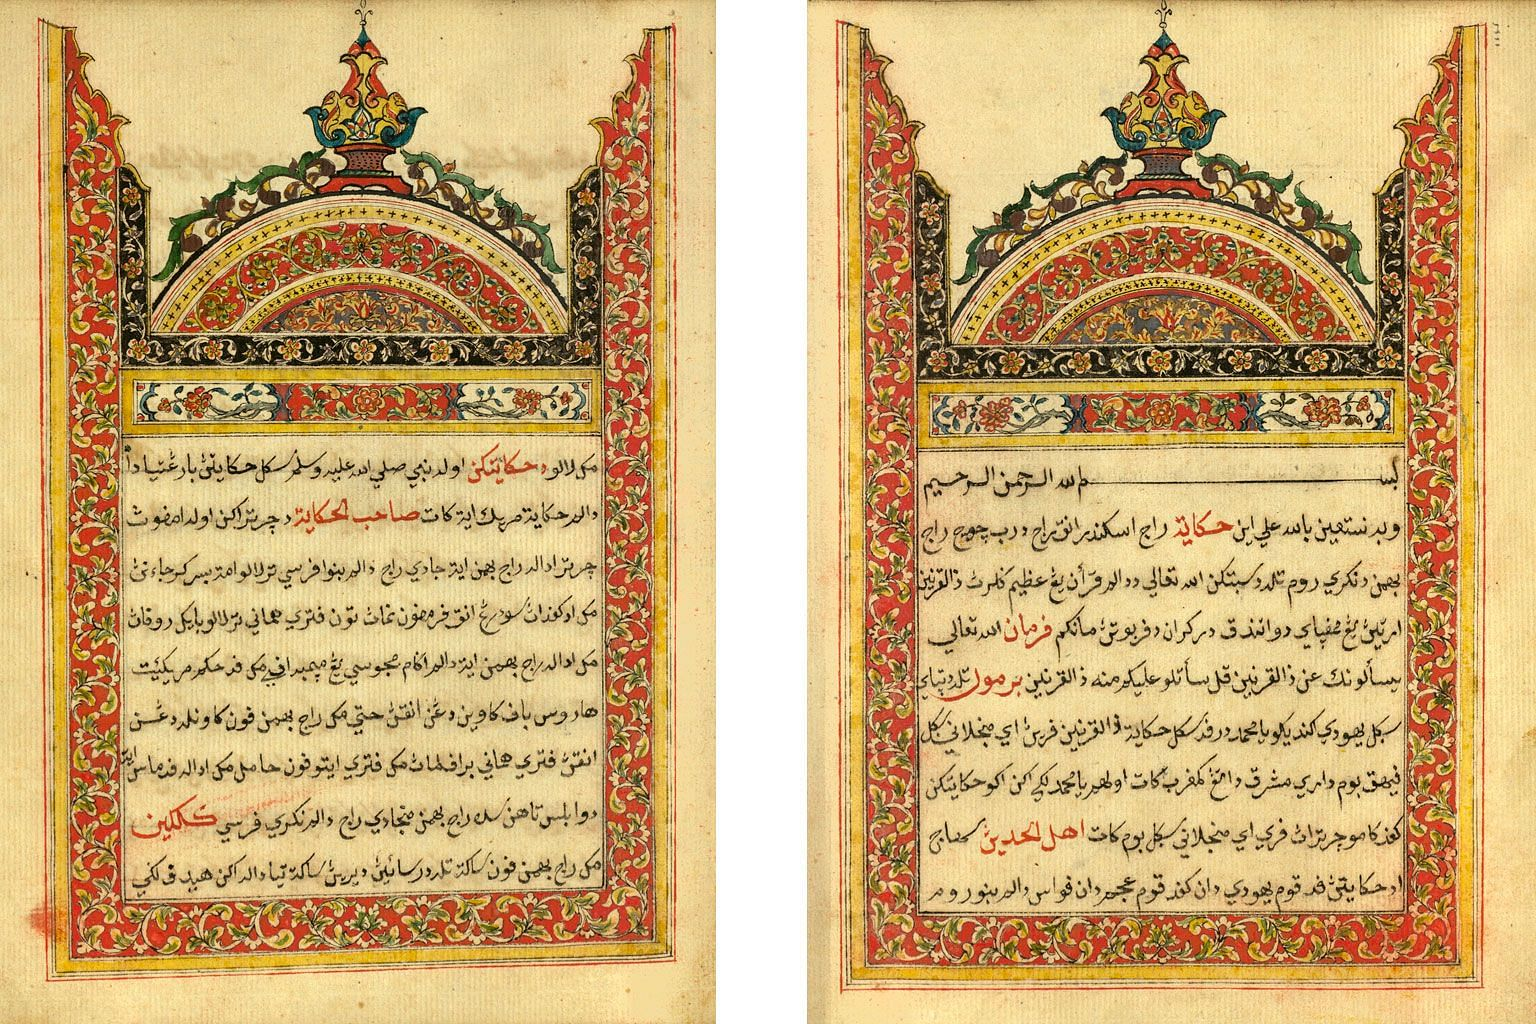 Pages from Hikayat Raja Iskandar Dhulkarnain (Volume 1), which belong to a manuscript that dates back to 1816. It is a Malay epic about the adventures of Raja Iskandar Dhulkarnain, thought to be the ancestor of many Malay sultans.